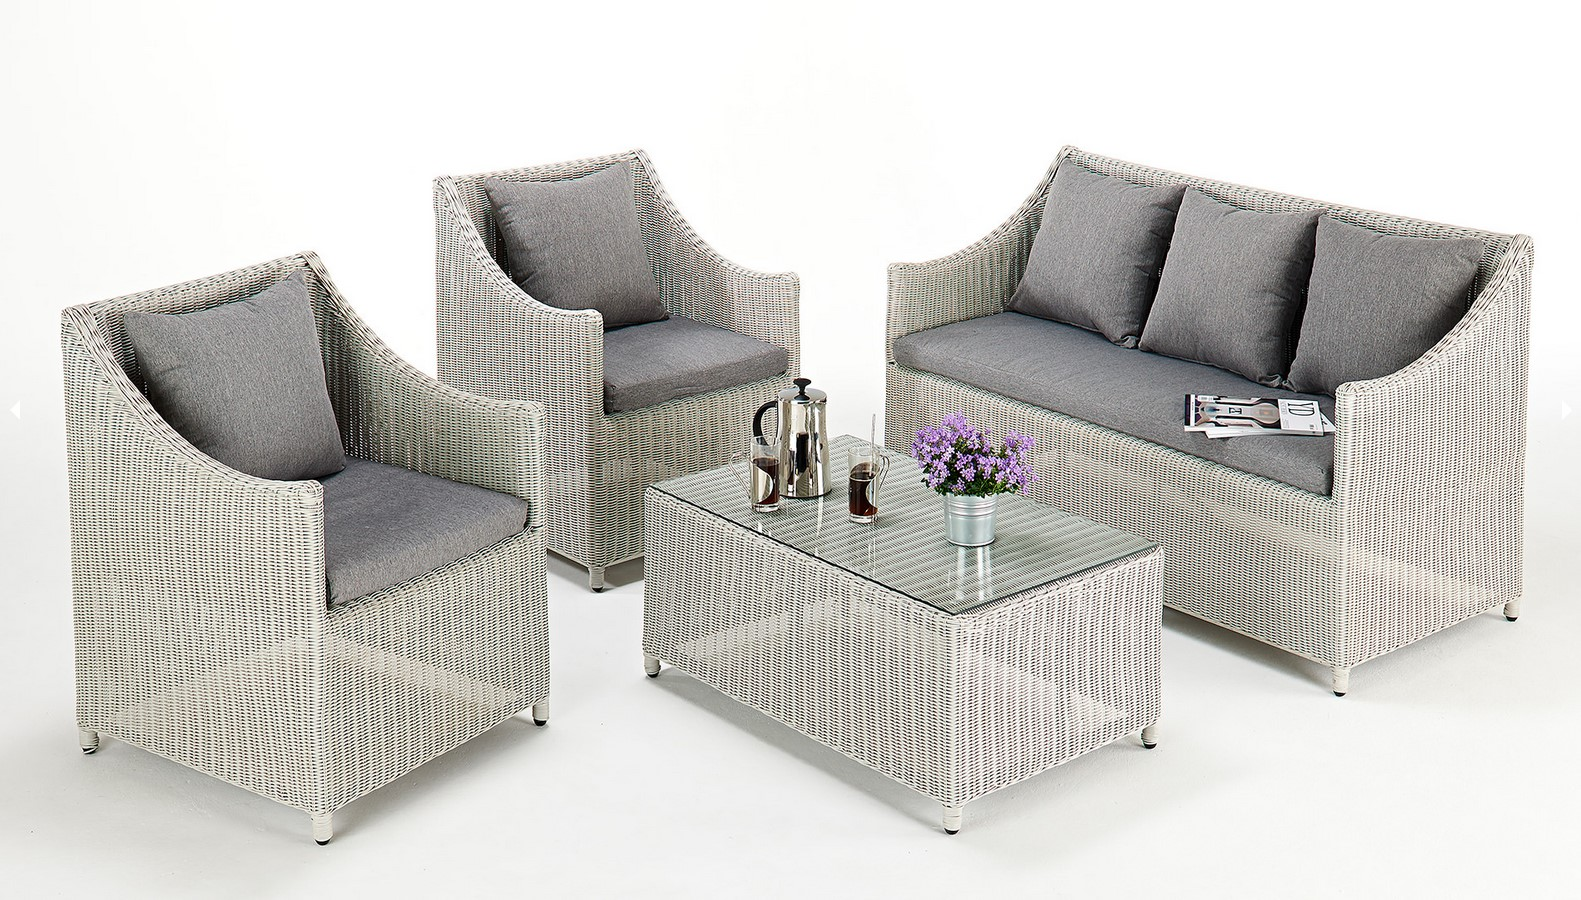 Kathleen contemporary rattan sofa set all weather rattan for All weather garden furniture